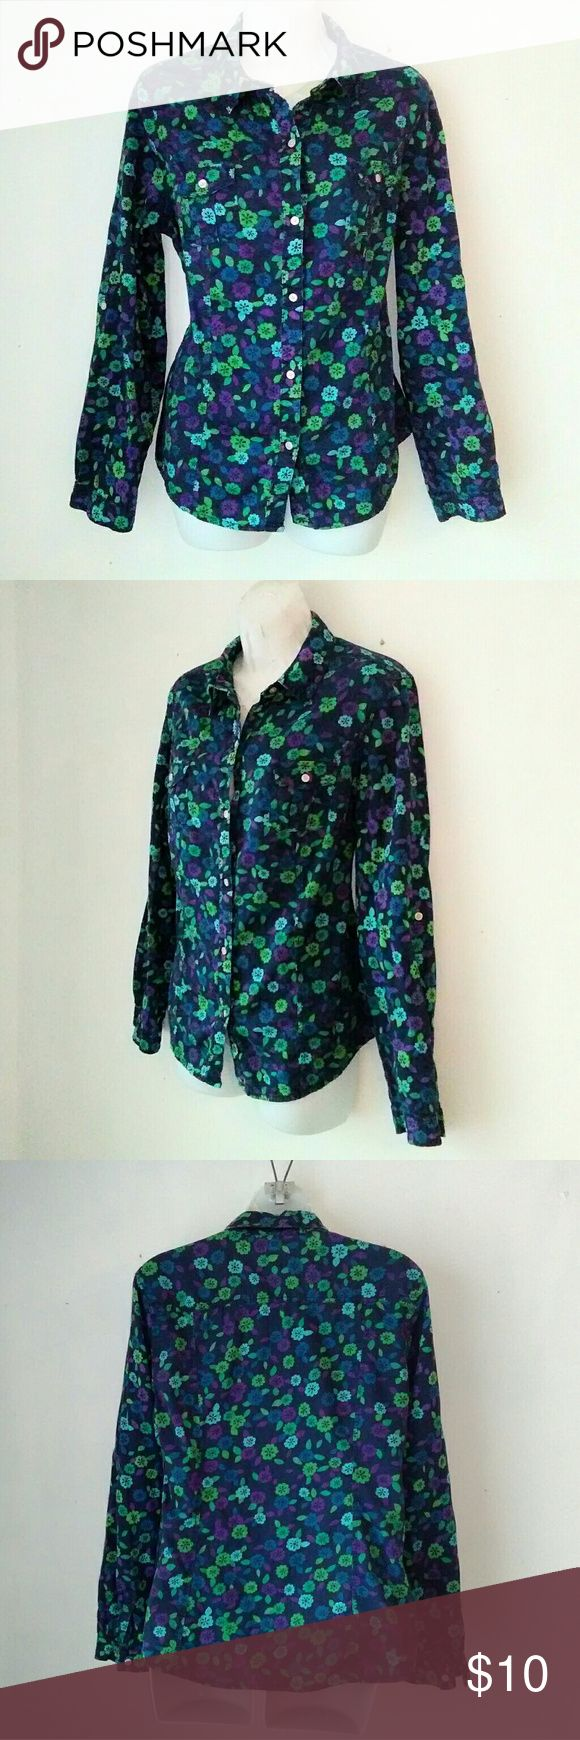 Old Naby Blue Floral Button down Shirt Blue purple floral print shirt. 100% cotton. Has 2 buttoned pockets . Excellent like new condition  B8 Old Navy Tops Button Down Shirts